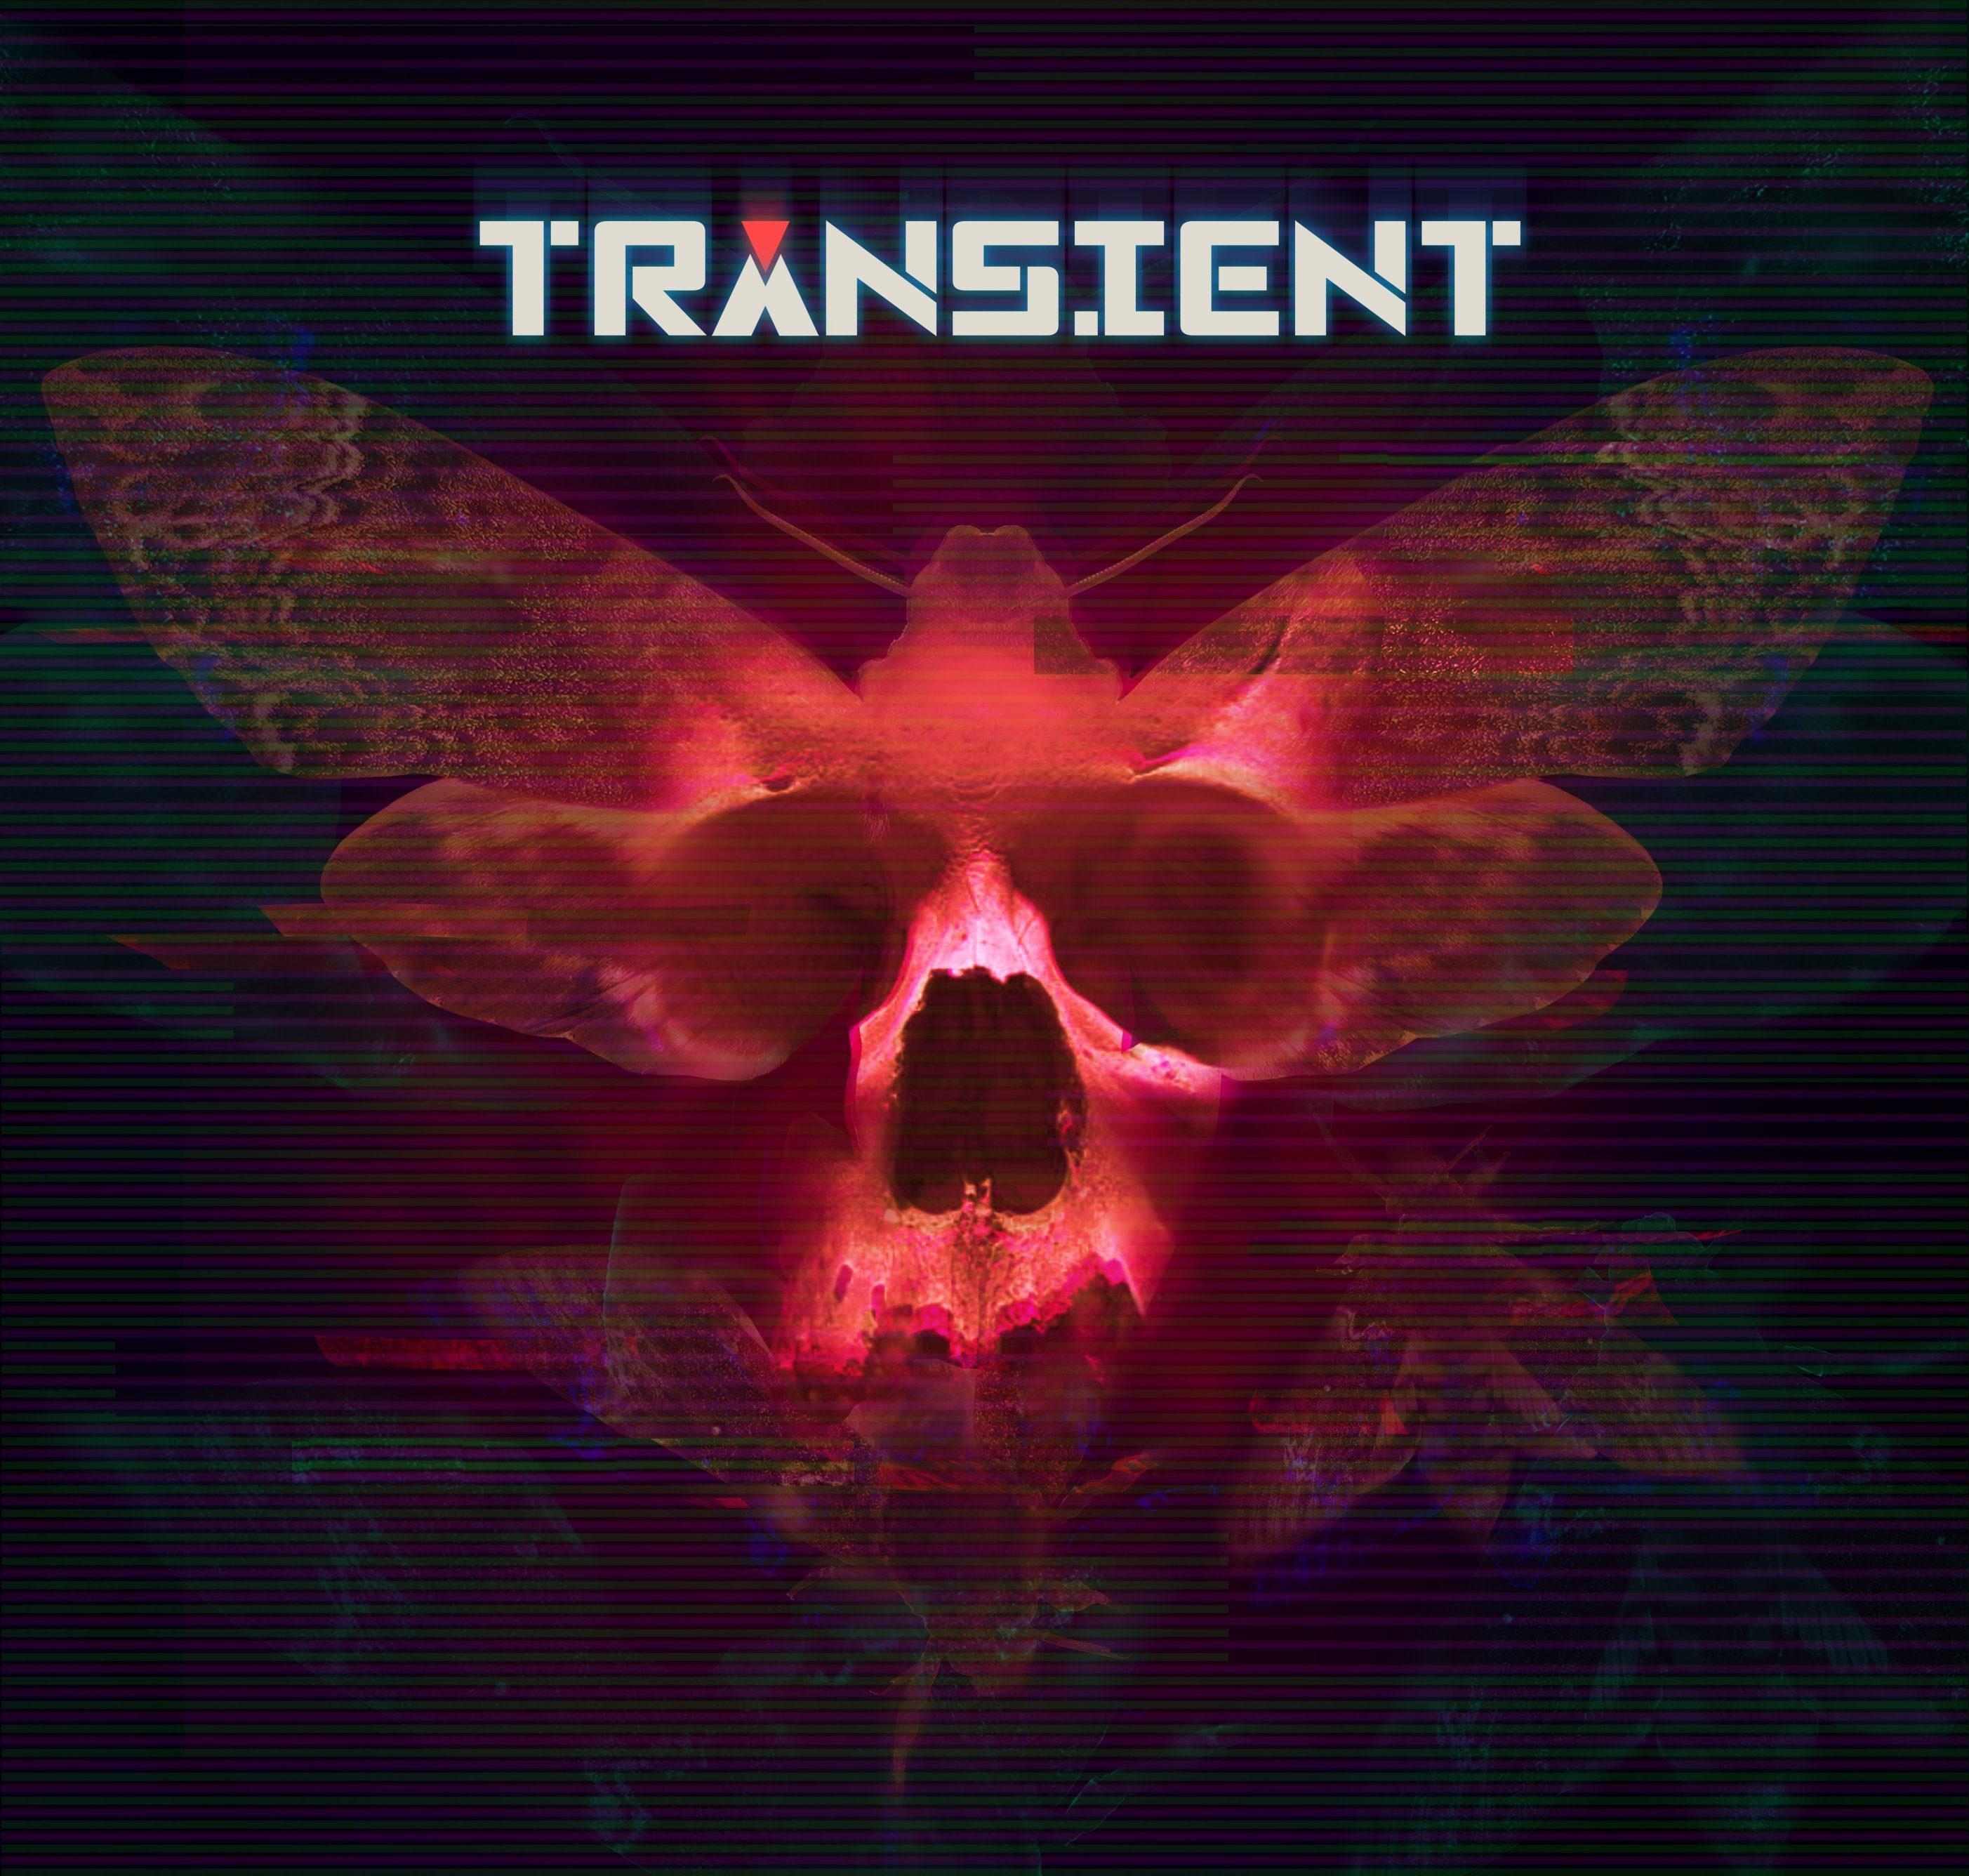 transient_key_art_(logo)